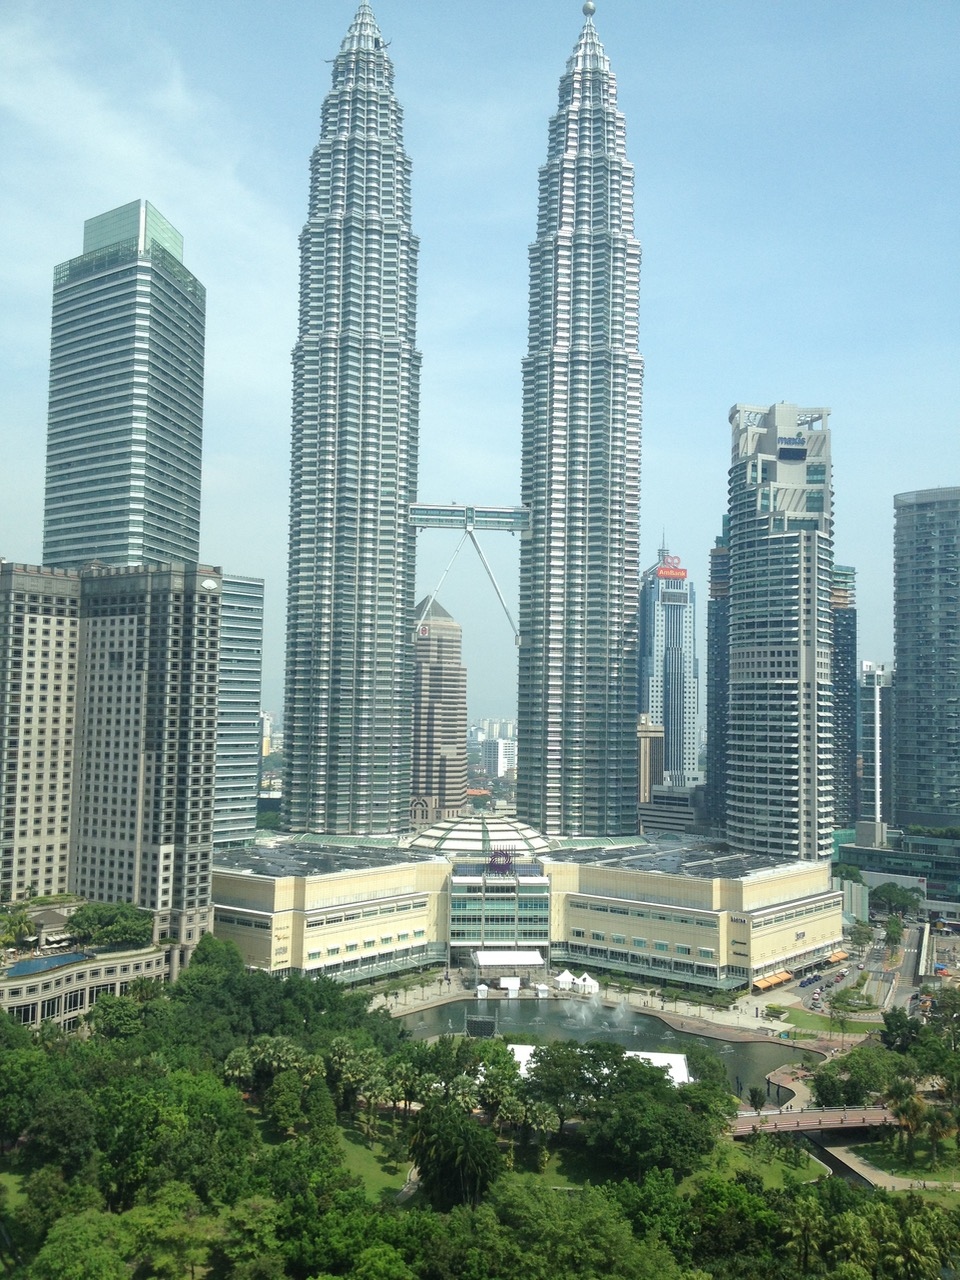 kuala lumpur photo essay traveling bytes petronas towers were the tallest buildings in the world from 1998 to 2004 and remain the tallest twin towers in the world